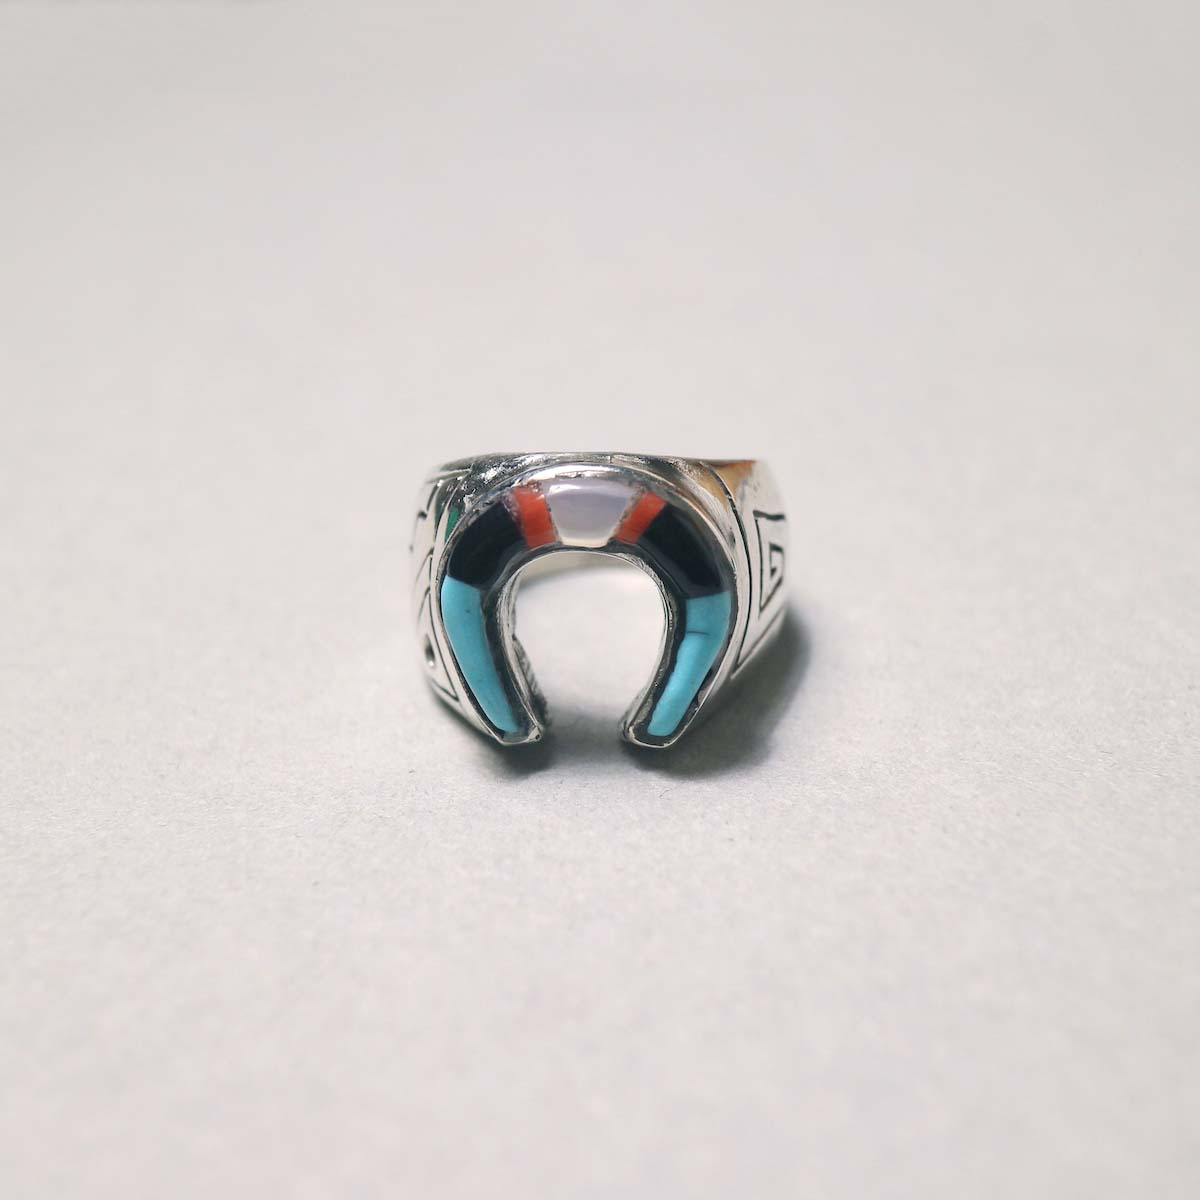 """Indian Jewerly / """"Leslie Lamy"""" (ZUNI) Horse Shoe RIng (Designed)正面"""